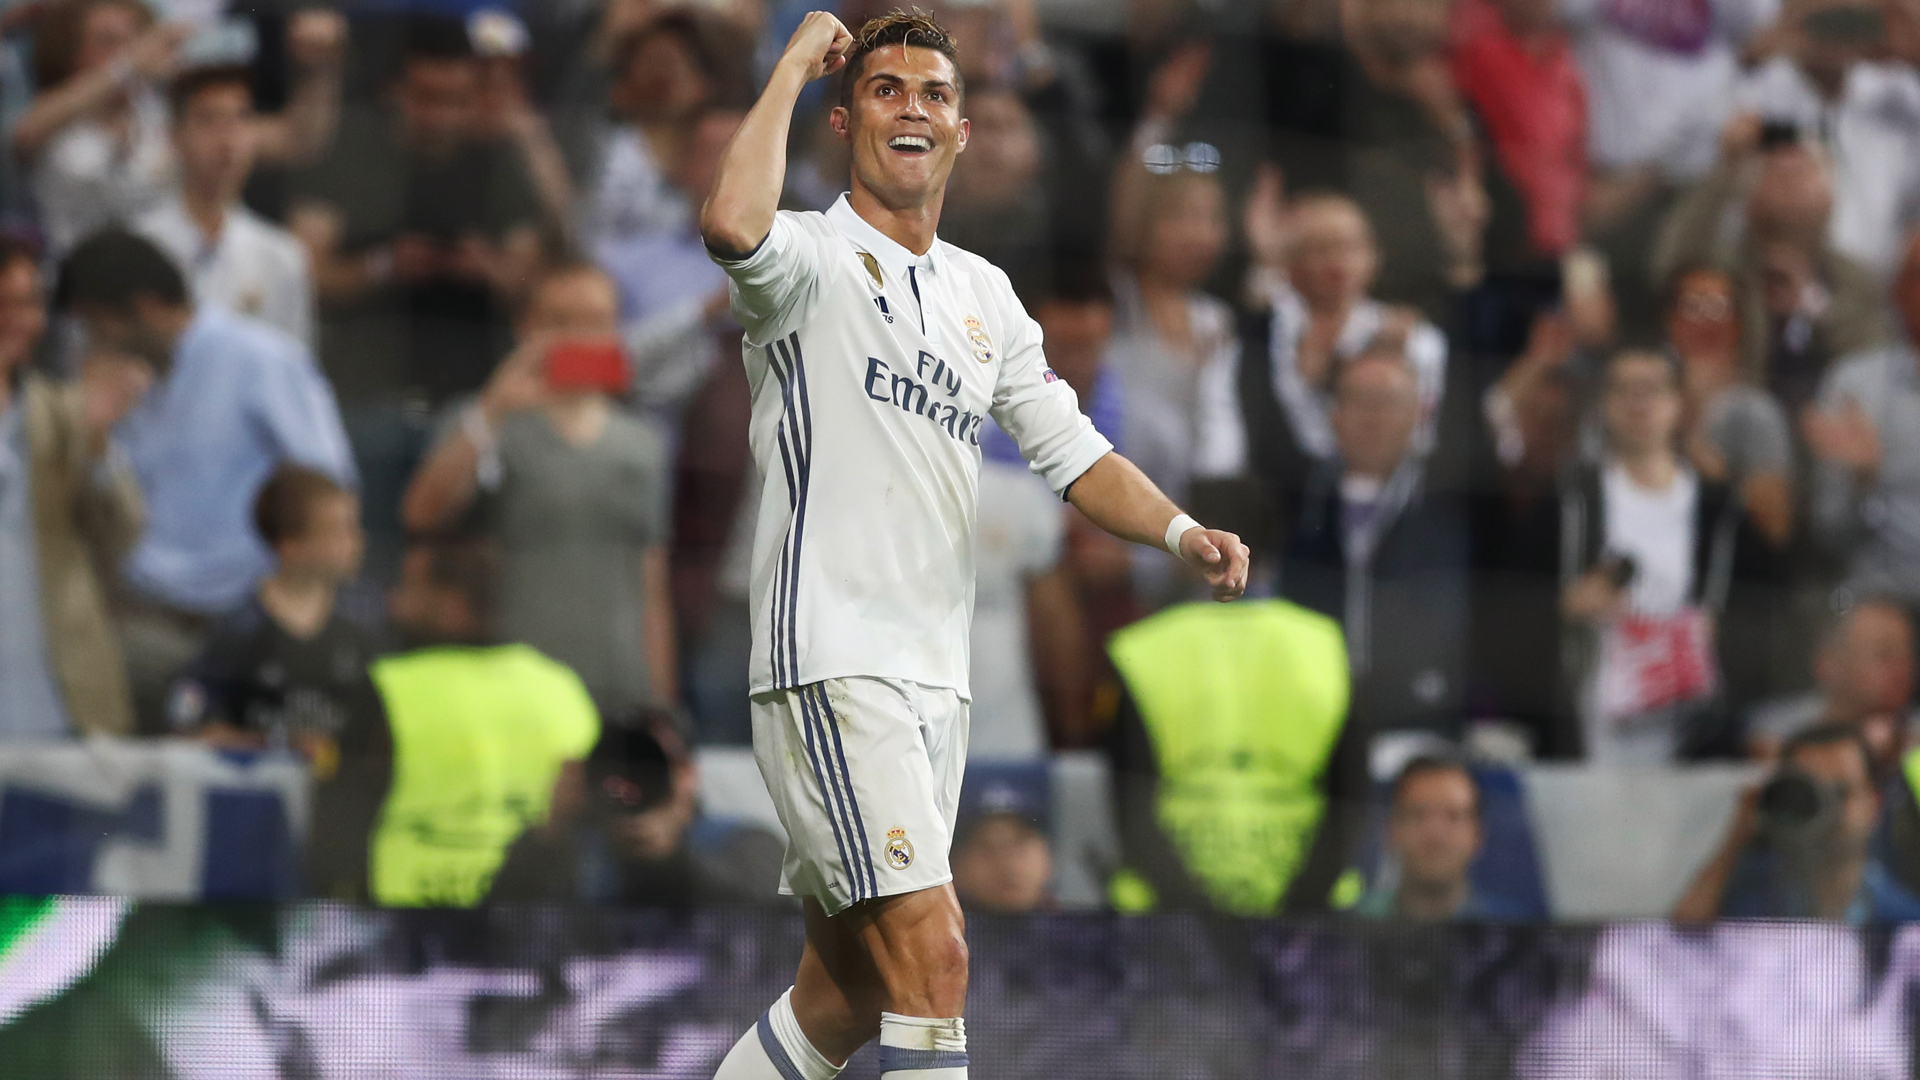 Ronaldo has goals in him, says Zidane